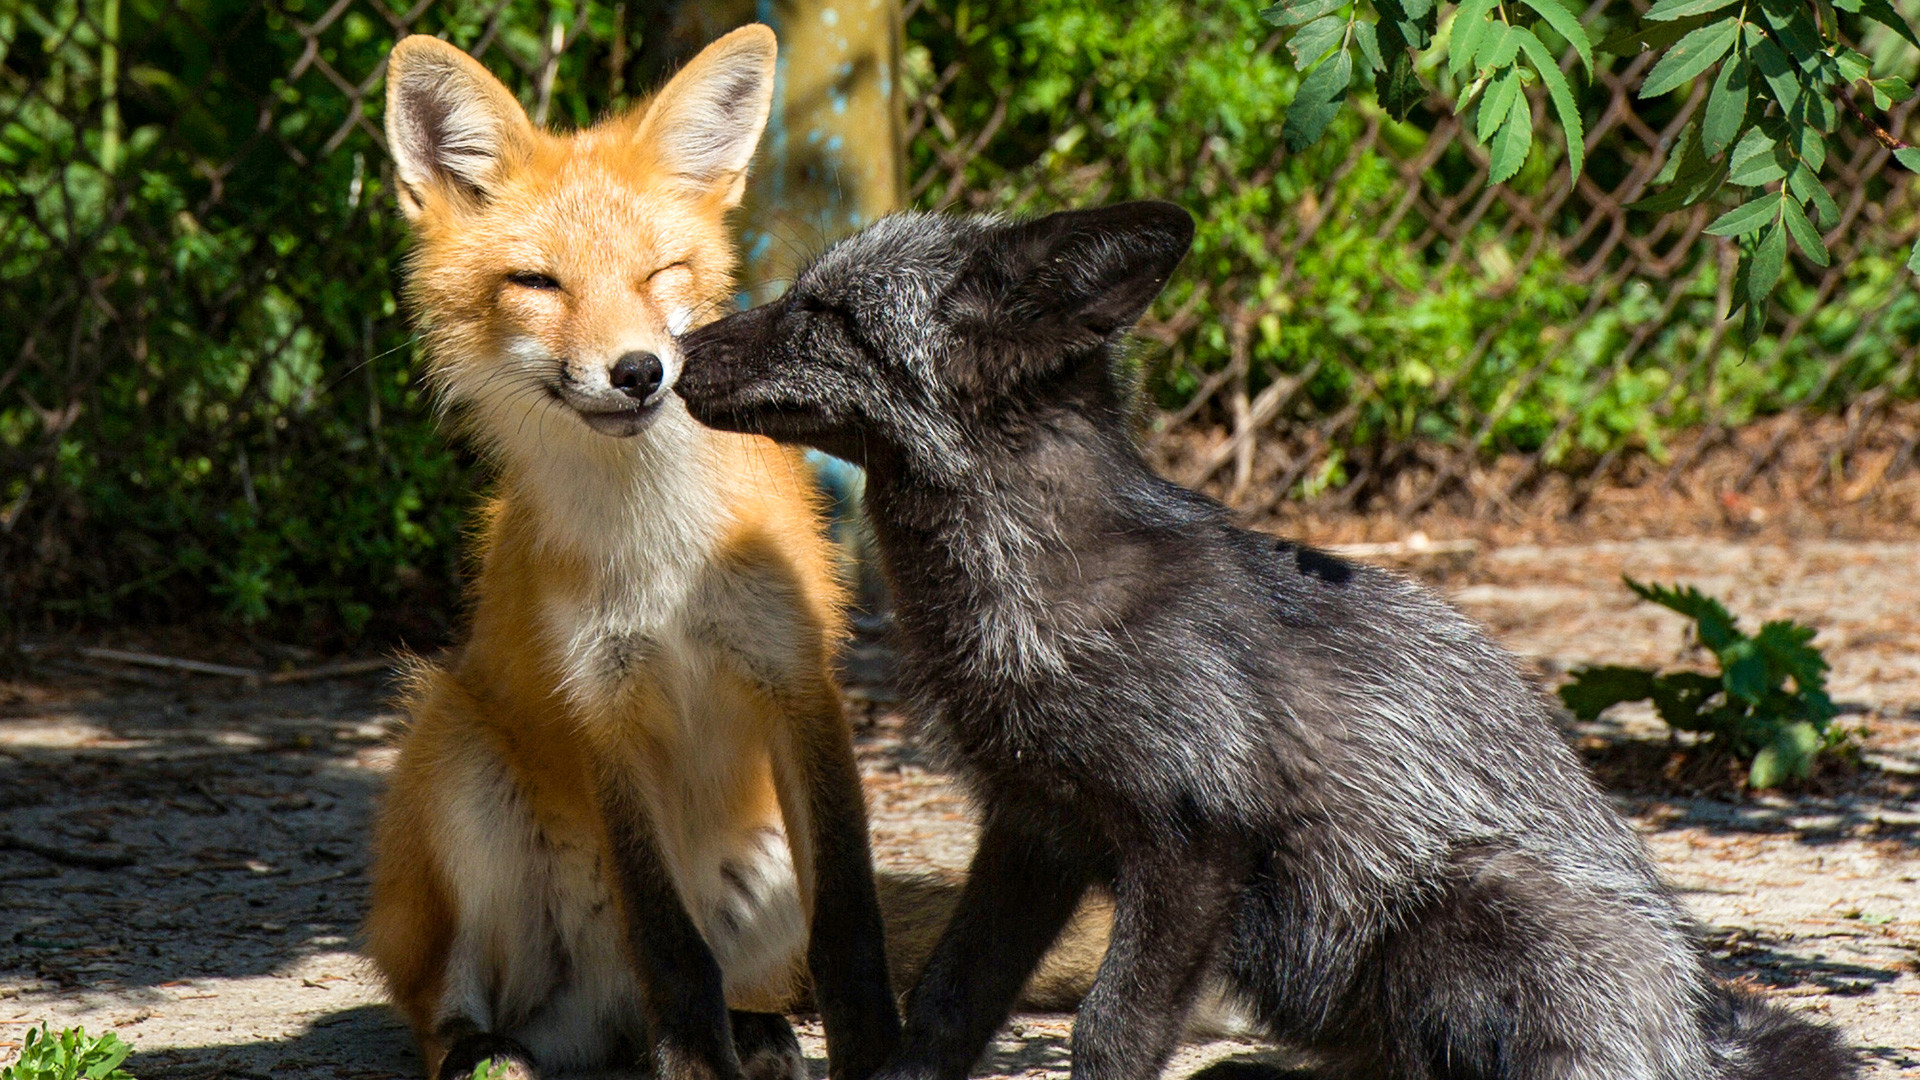 Tame foxes are seen here in the enclosure on the experimental farm of the Institute for Cytology and Genetics of the Russian Academy of Sciences Siberian Branch.